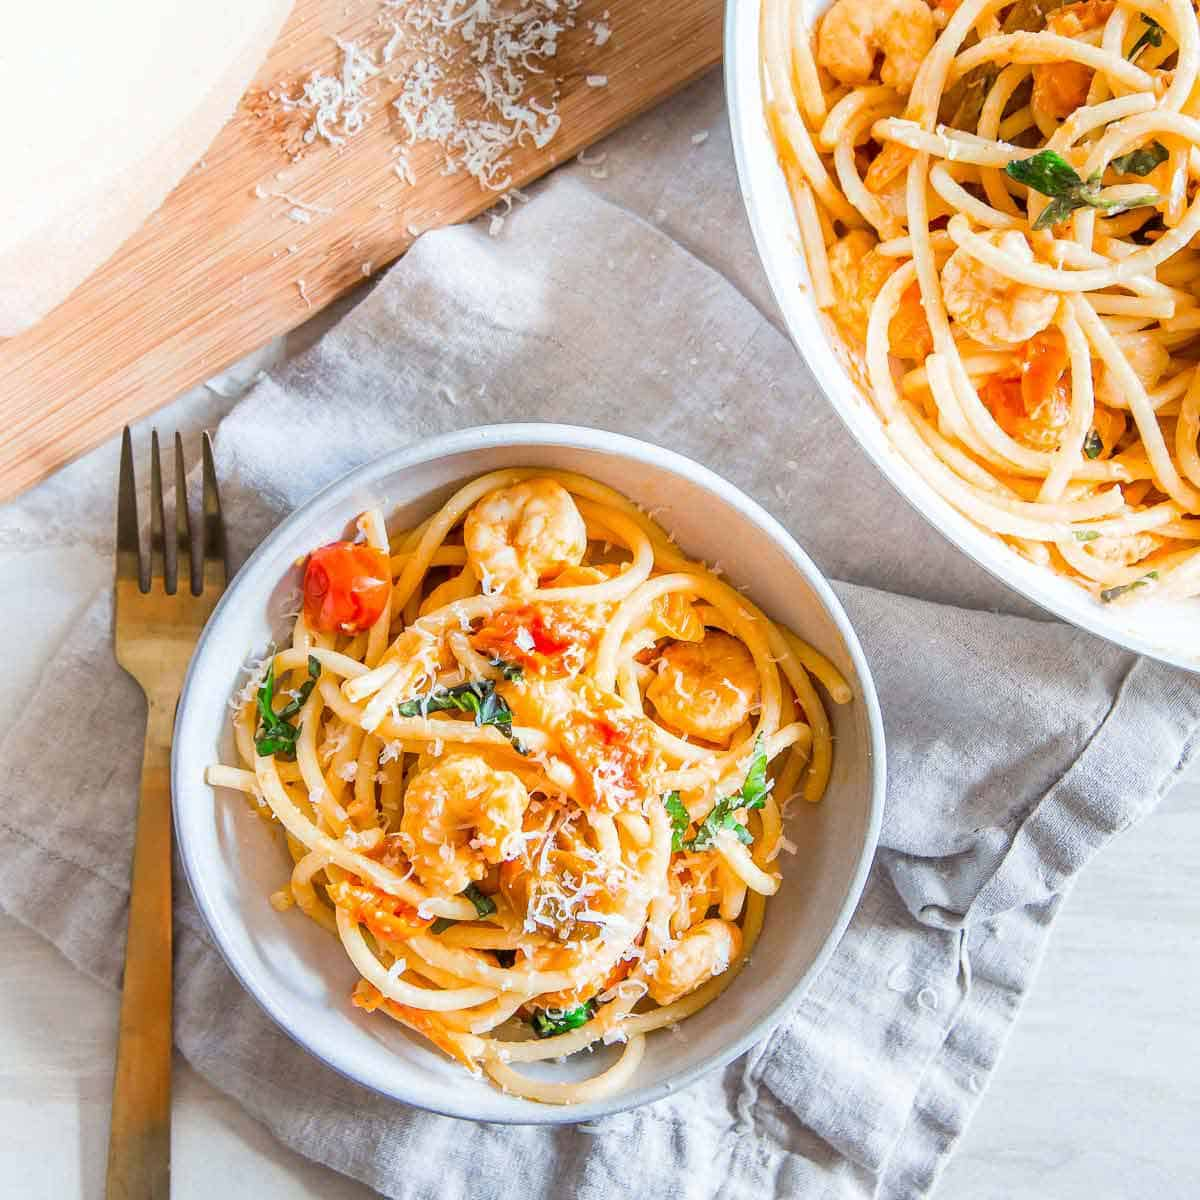 This easy bucatini pasta recipe tossed with garlic shrimp and cherry tomatoes is made in under 30 minutes making it a great weeknight meal.